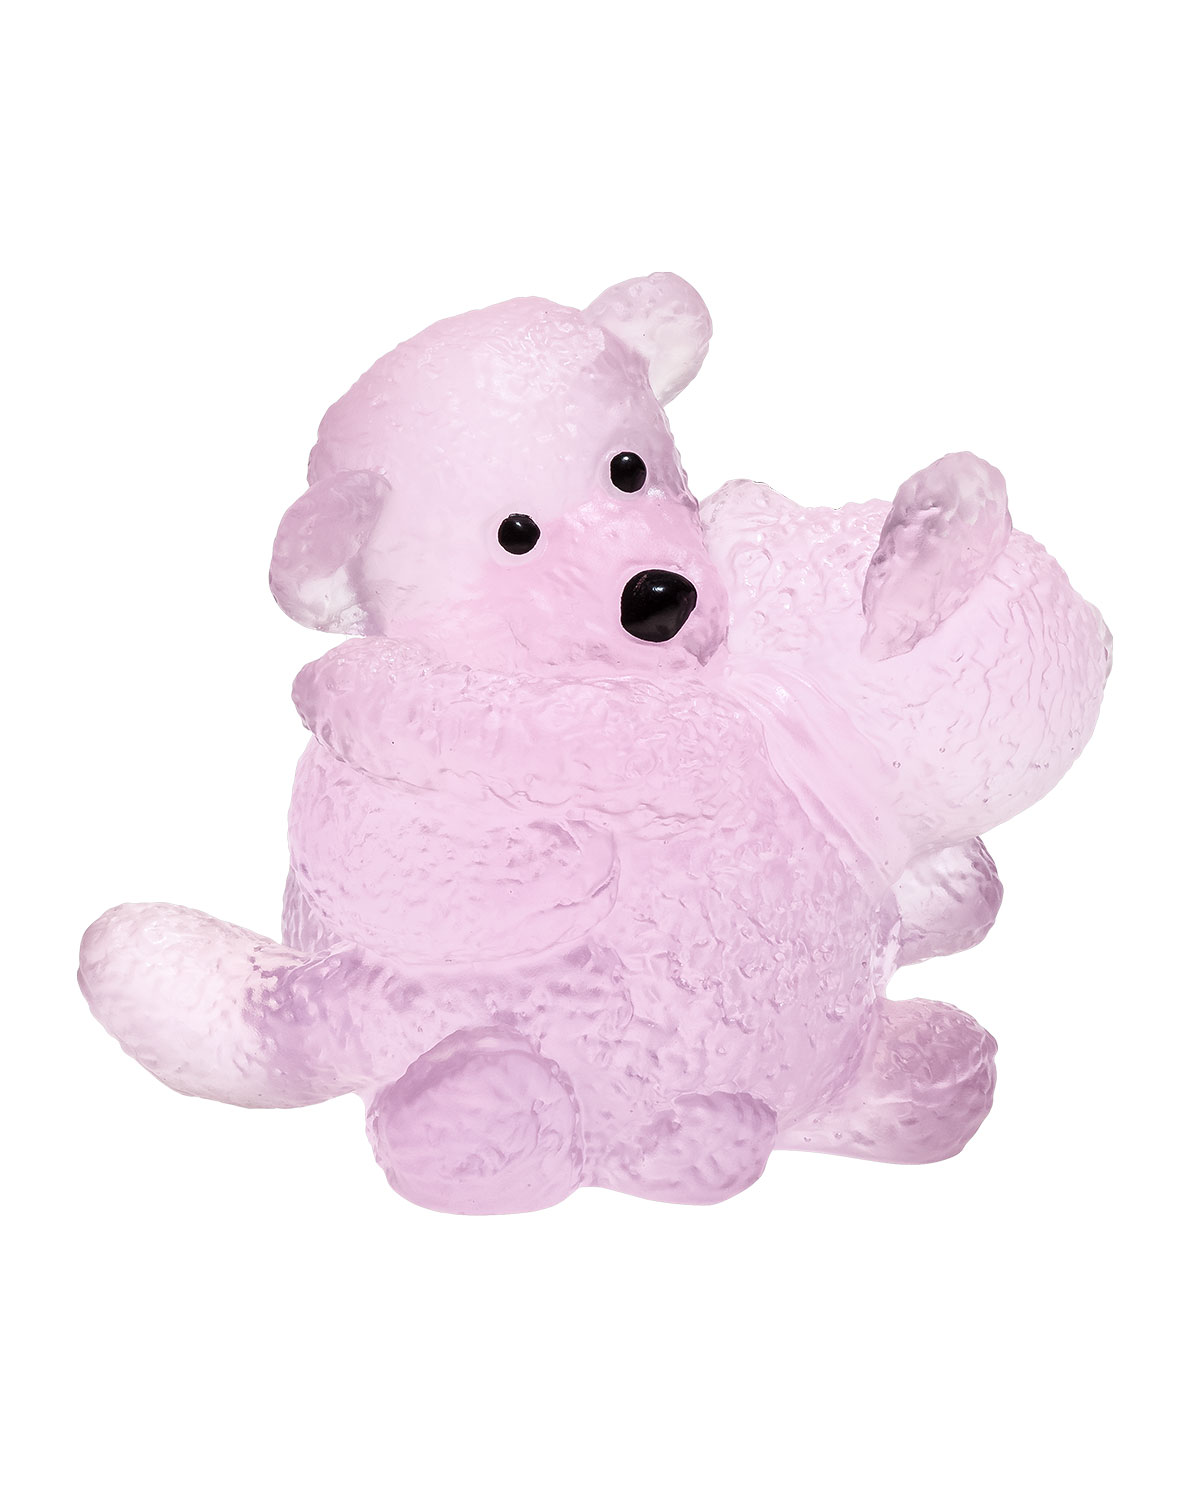 Daum Twin Bears, Pink